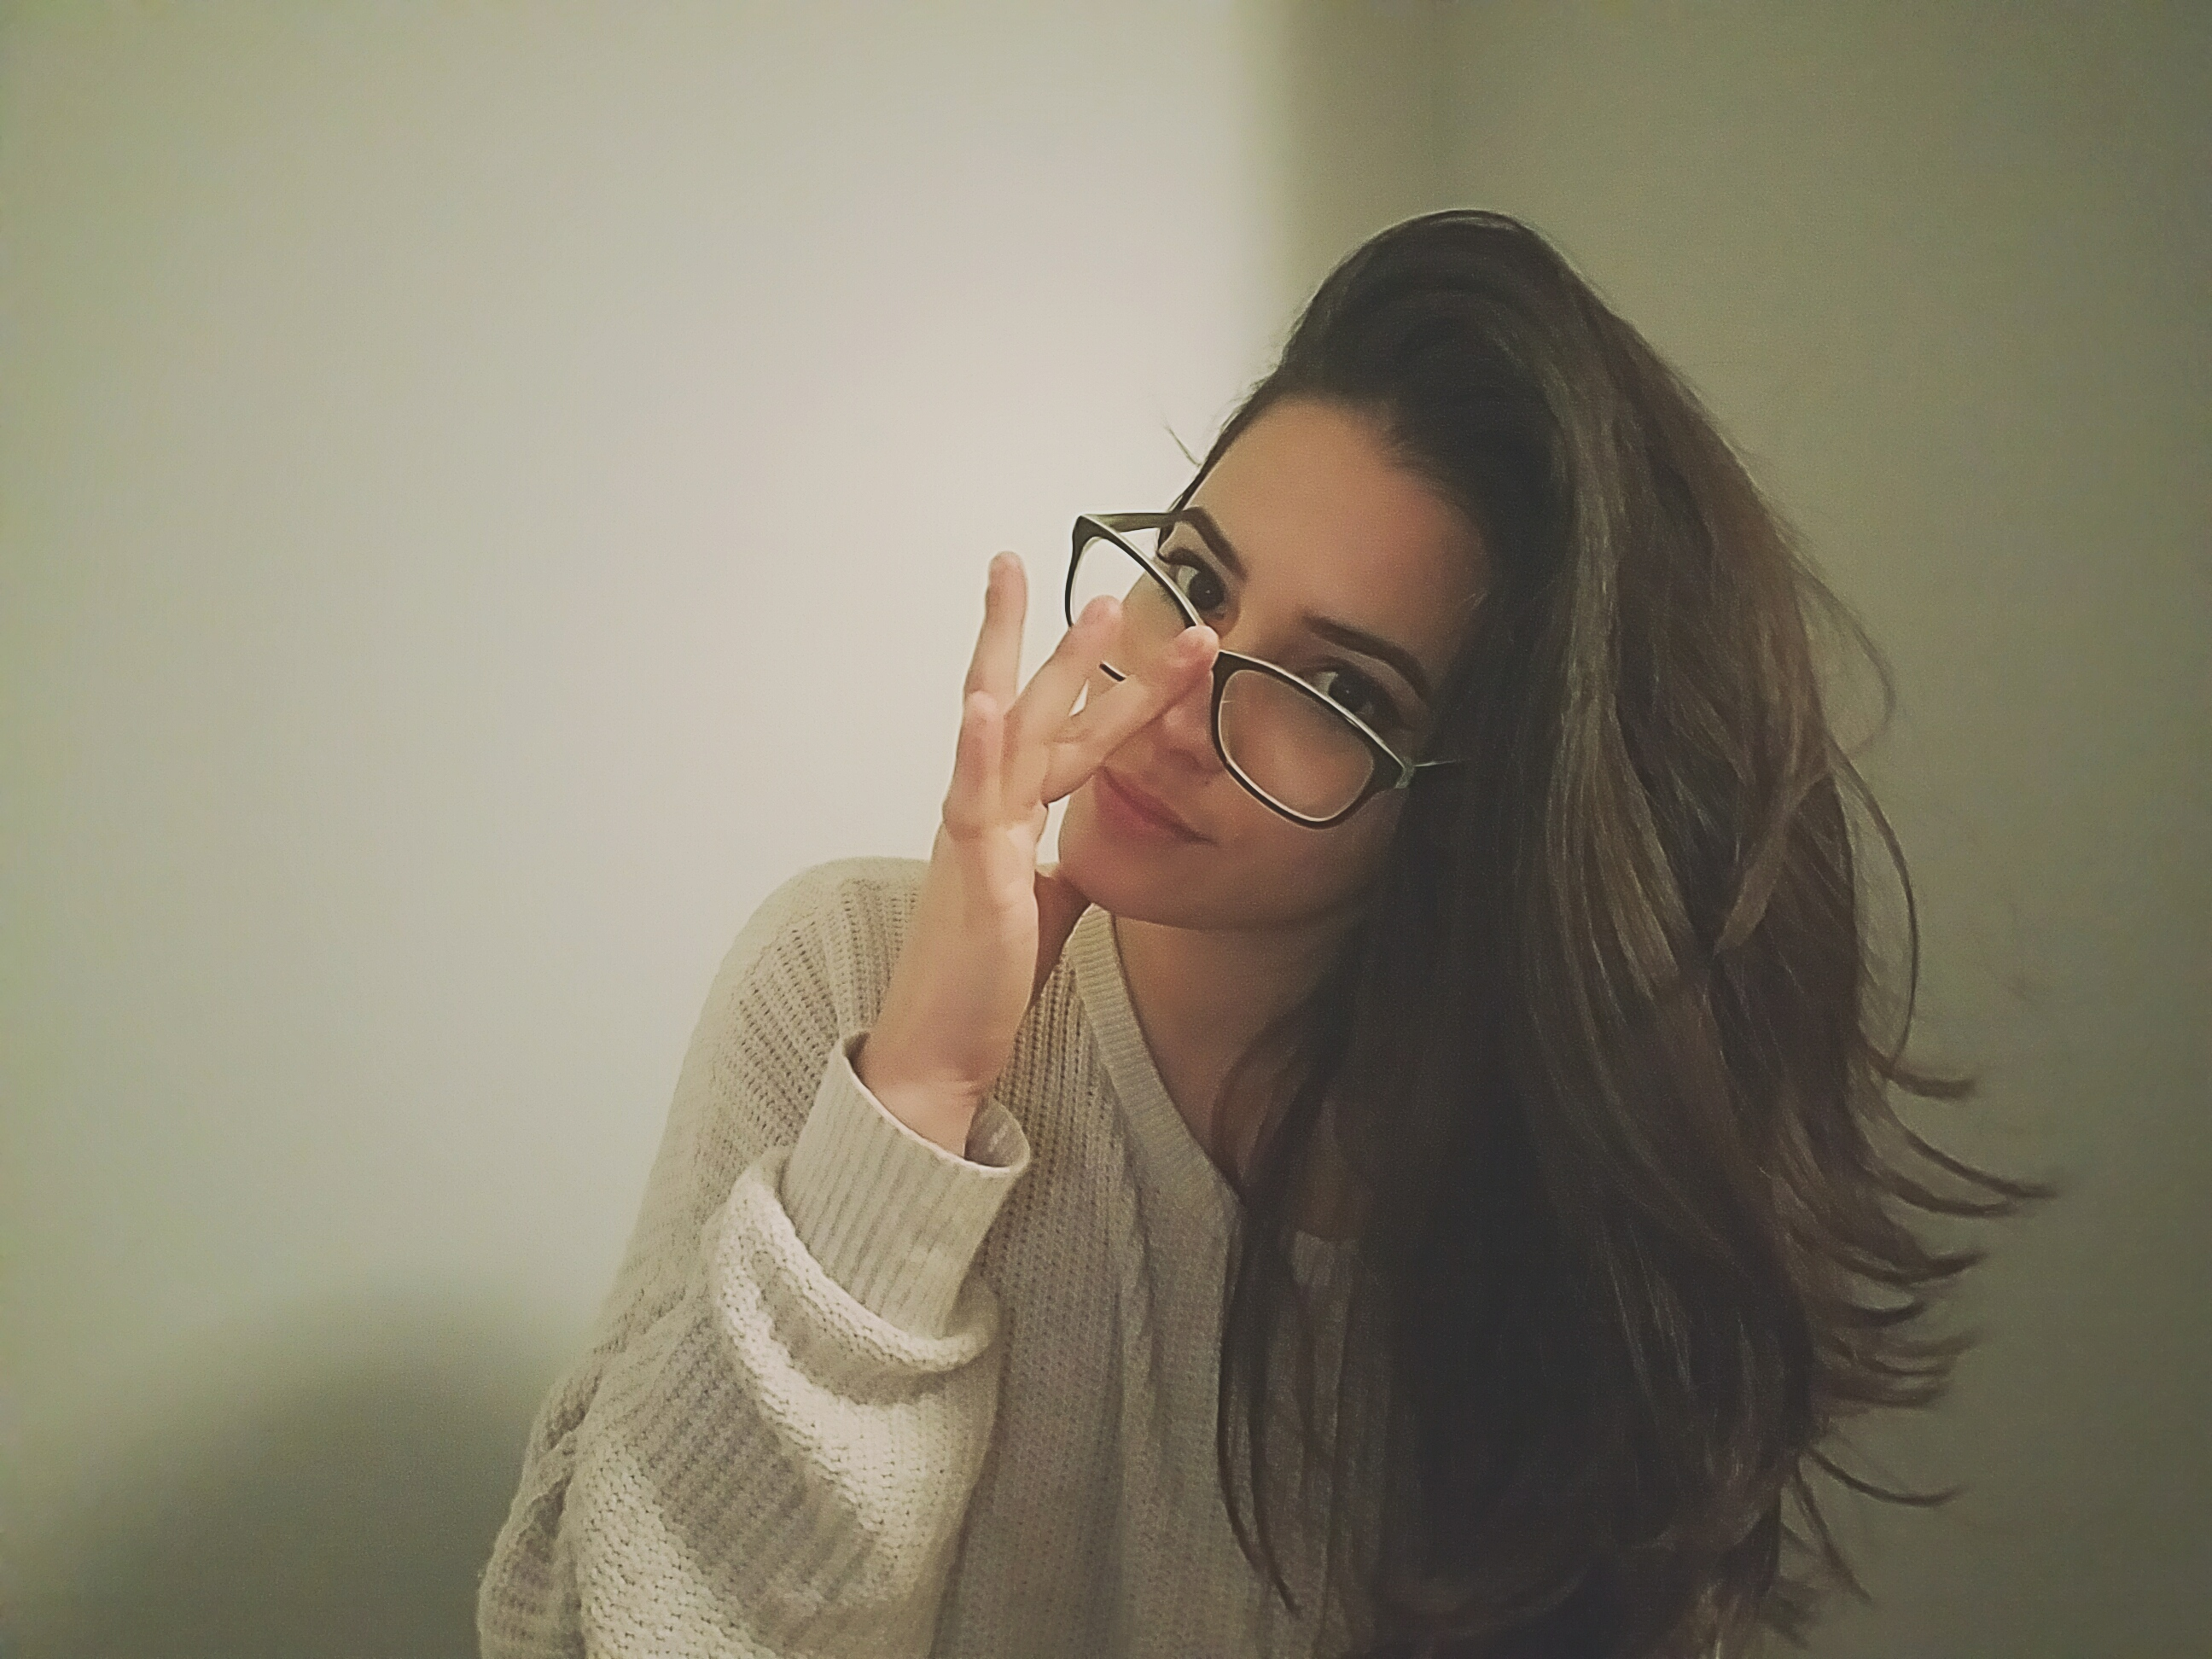 Girl wearing a white knit sweater with long dark hair flipped over to her left, pushing up dark glasses and looking into the camera